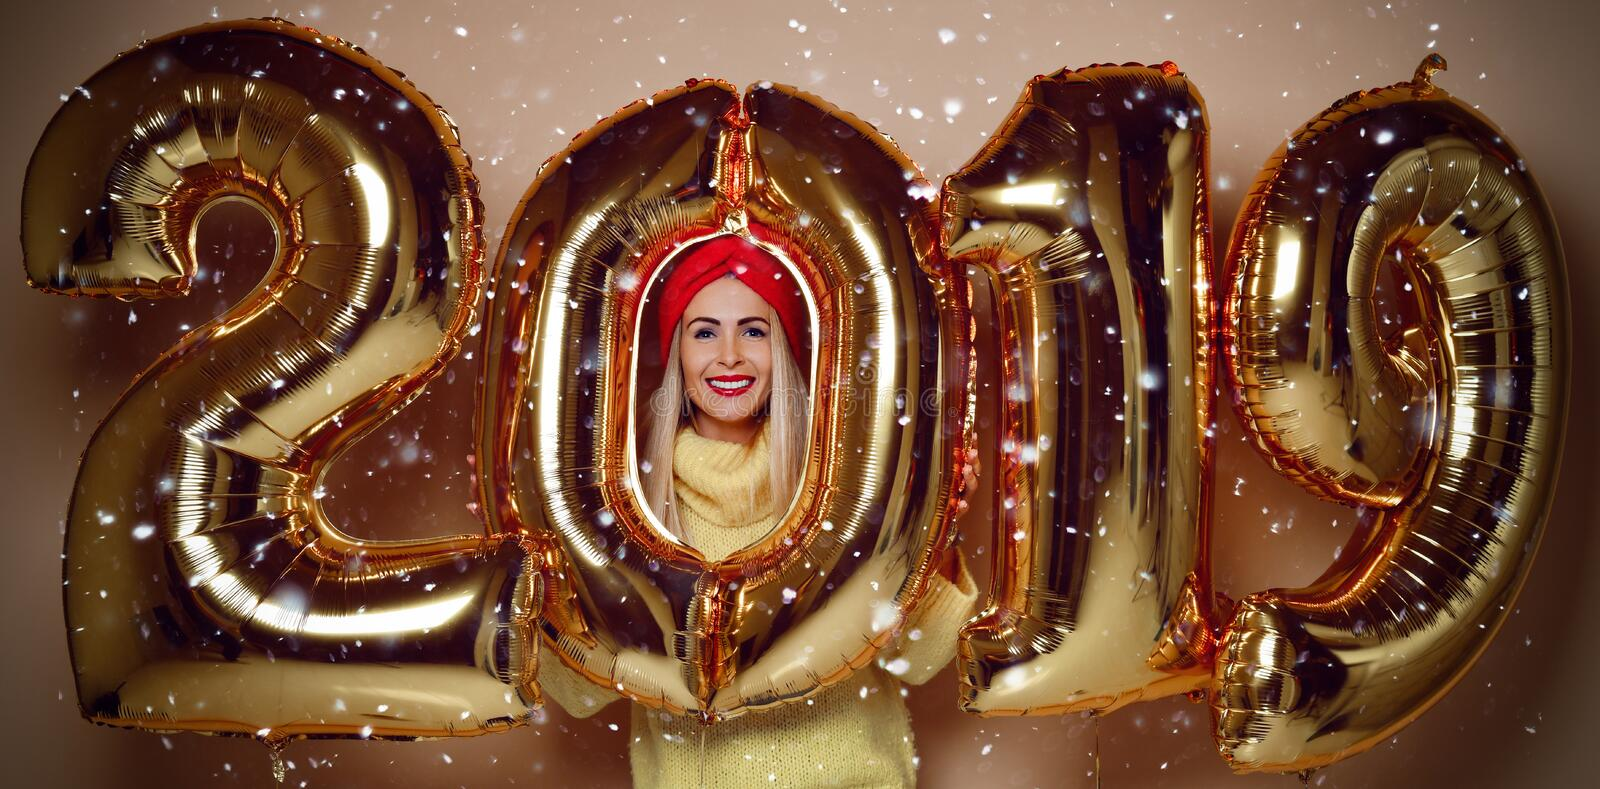 Woman celebrating New Year xmas party happy laughing in yellow sweater blouse with 2019 gold balloons stock image